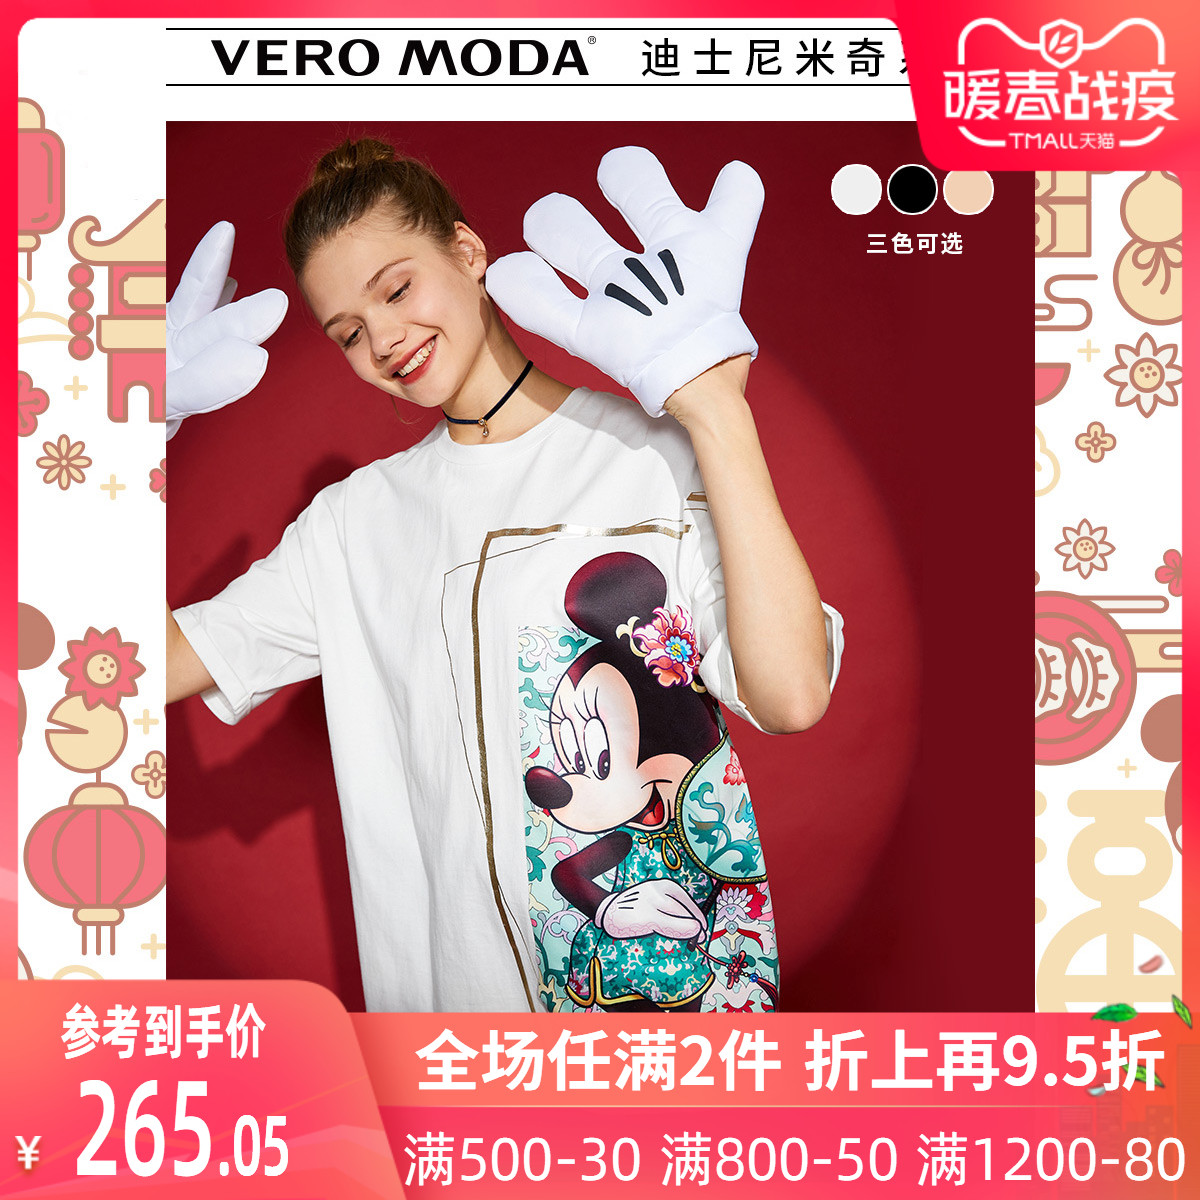 Vero Moda Mickey co launch spring / summer 2020 new Chinese gegmini printed T-shirt for women